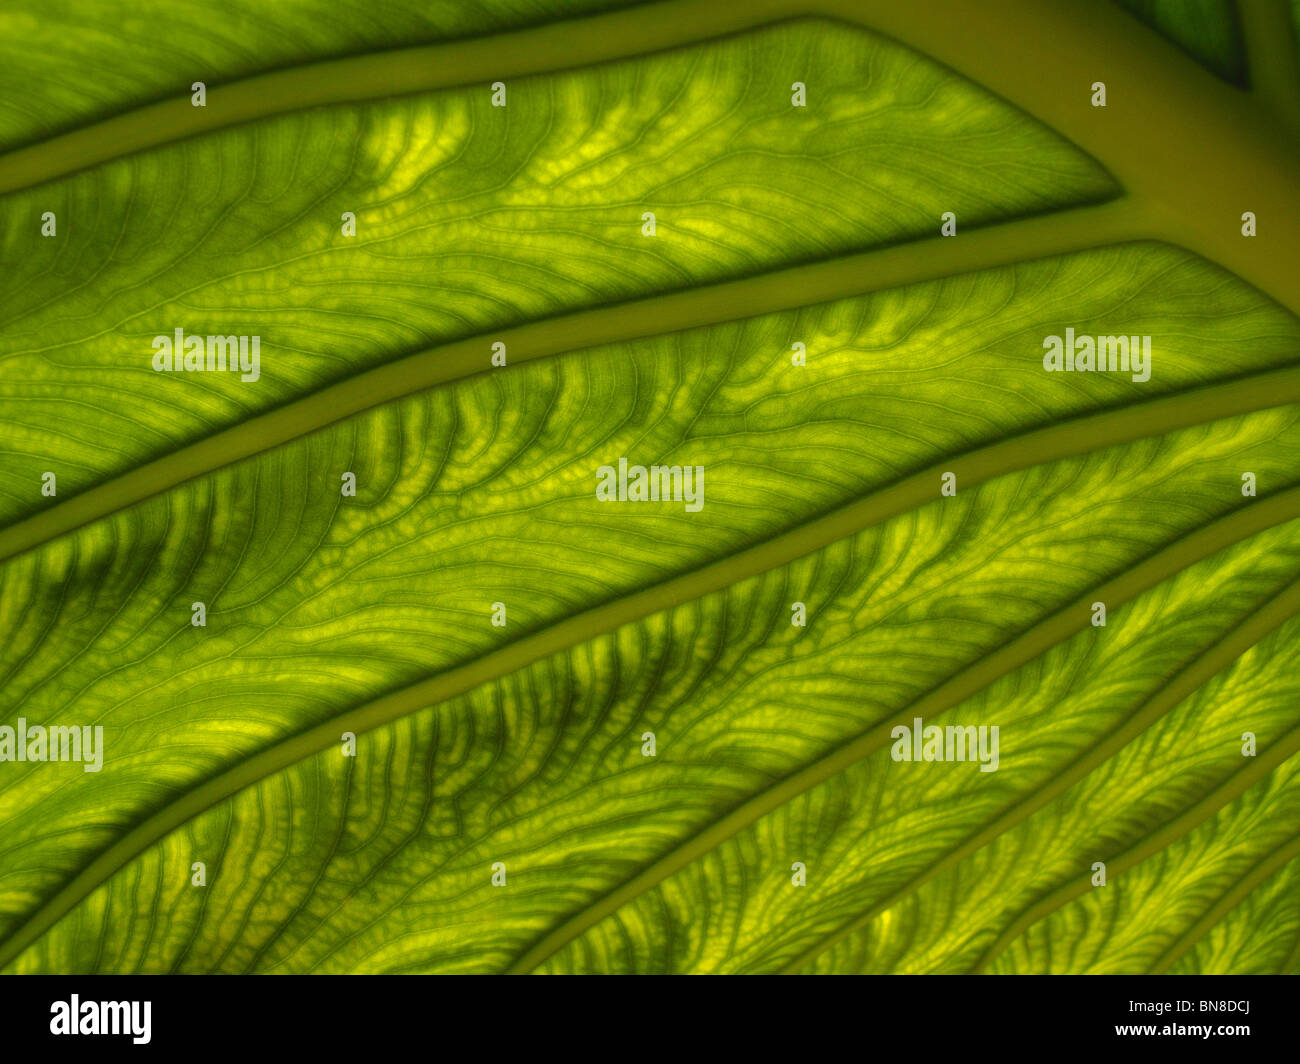 Macro shot of plant leaf. Sunlight shinning through a plant leaf, showing detailed, intricate patterns in the leaf Stock Photo